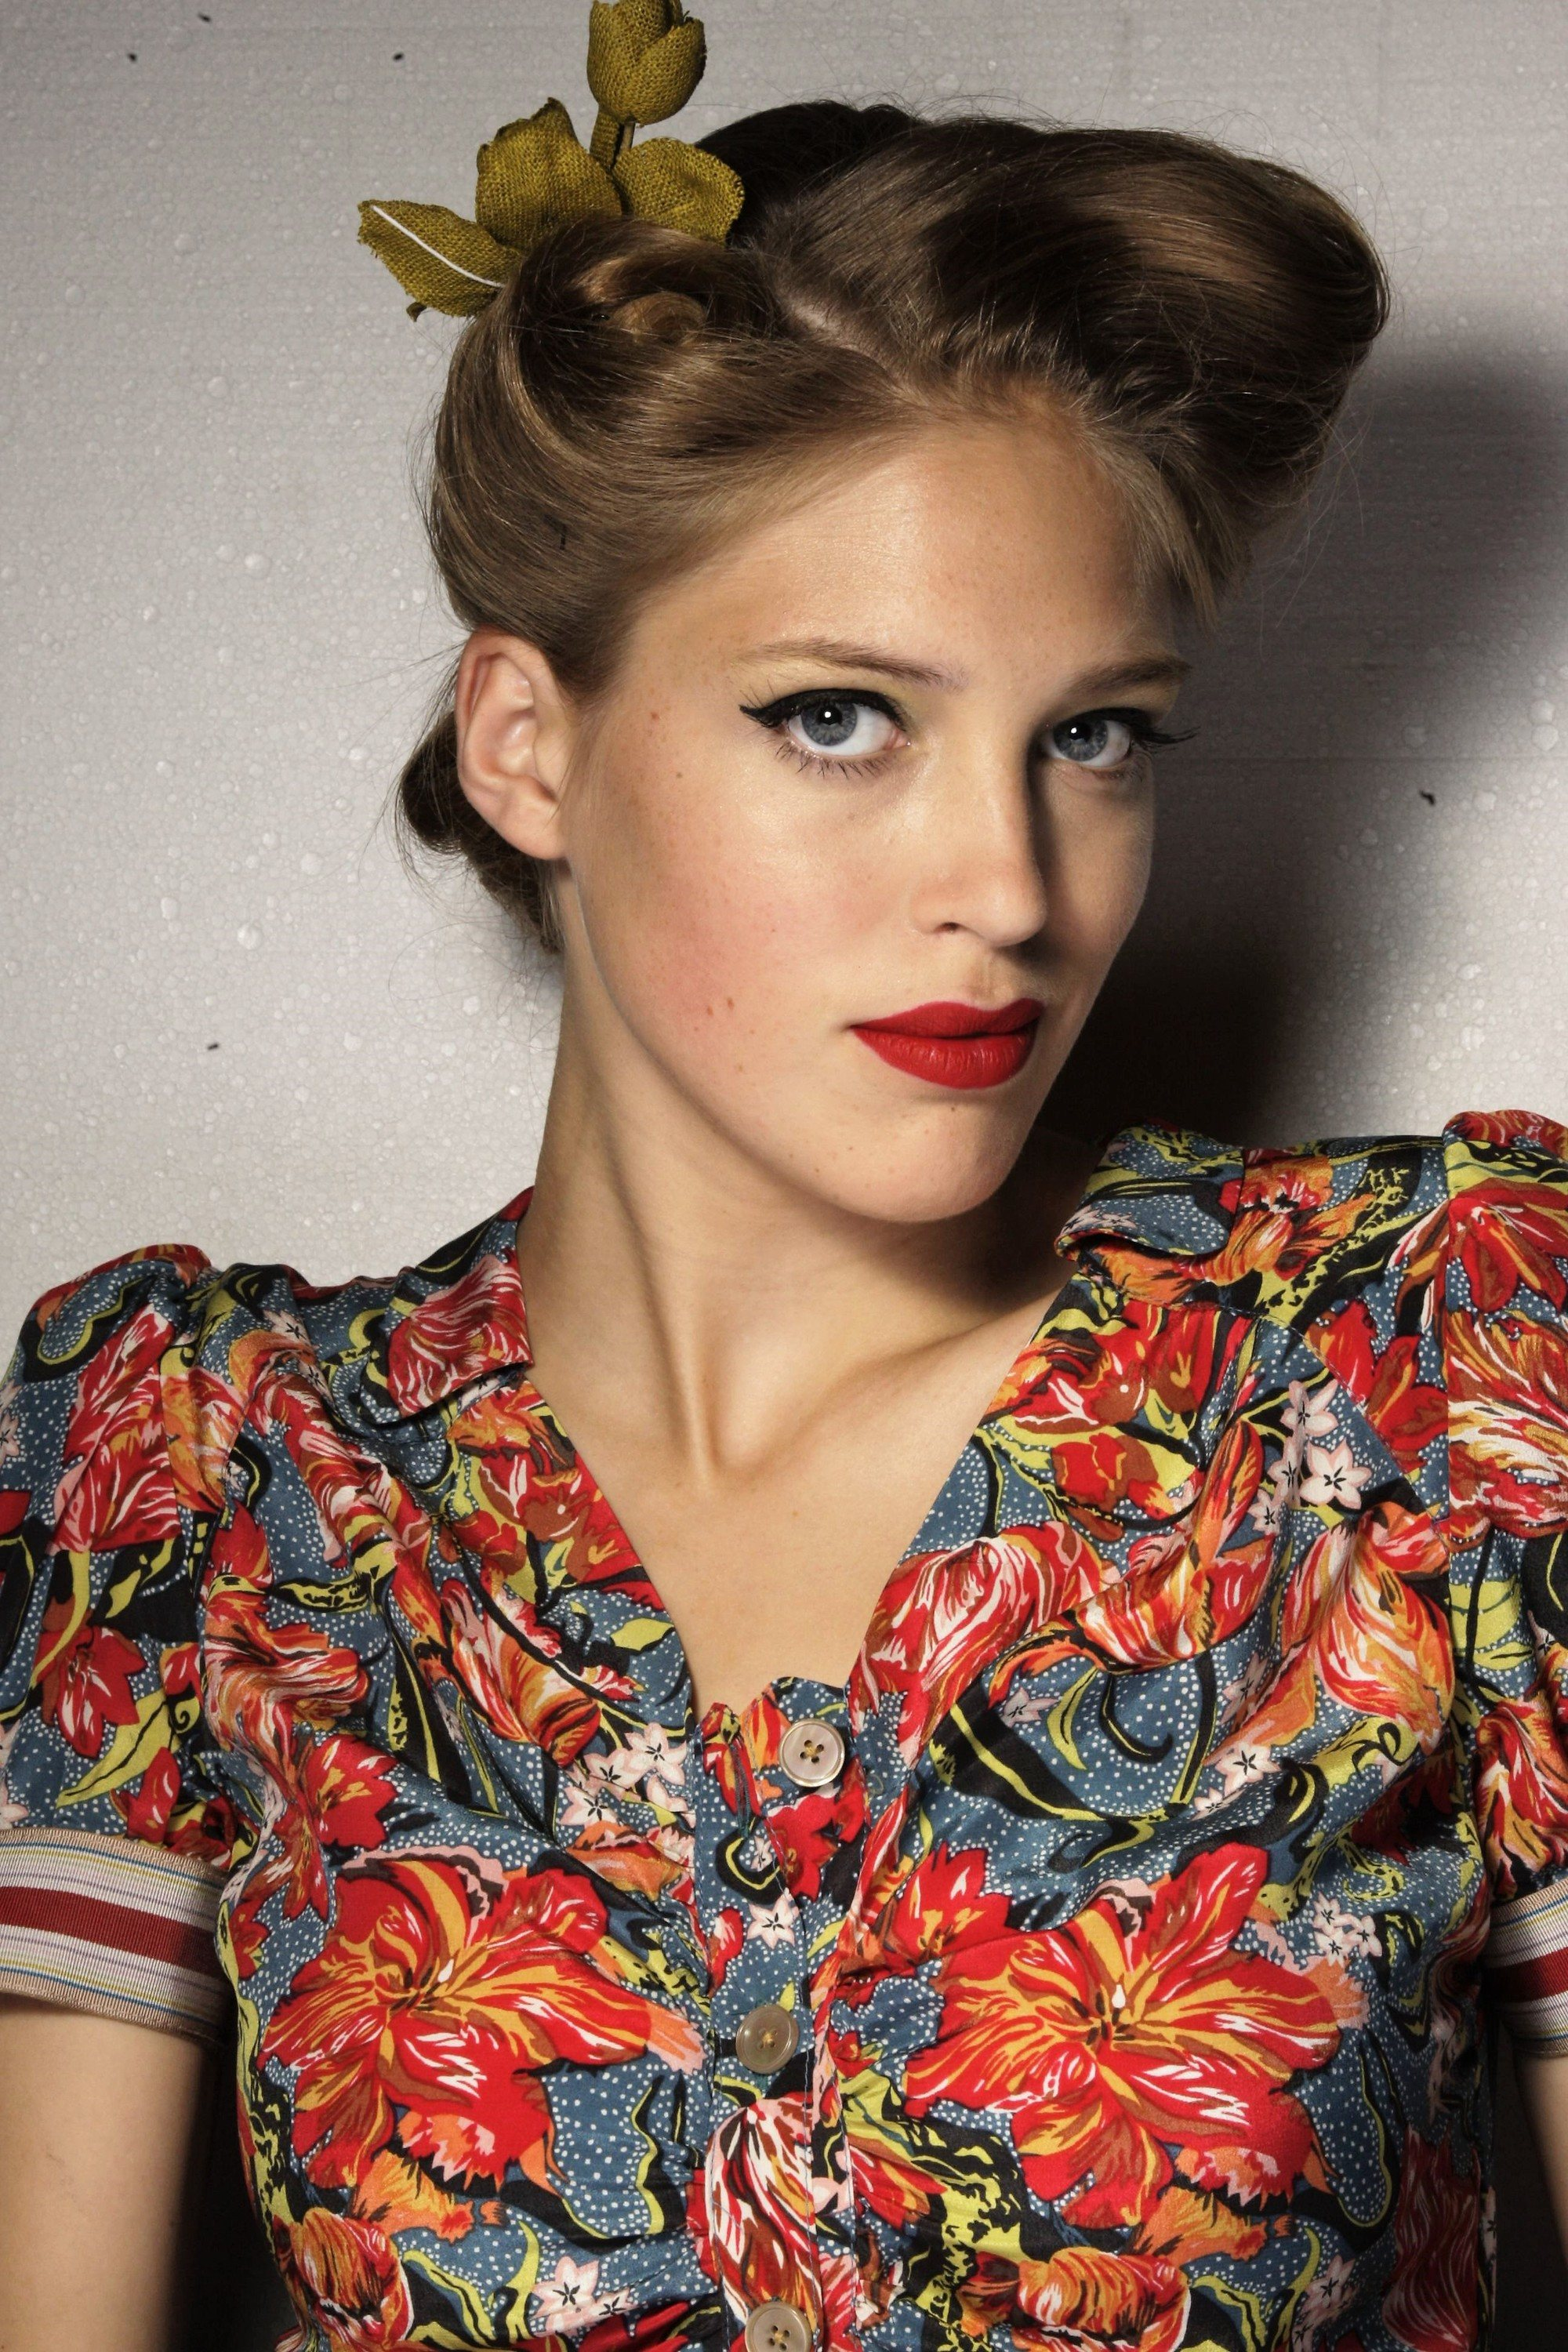 Vintage hairstyles for beginners: Know your eras with our